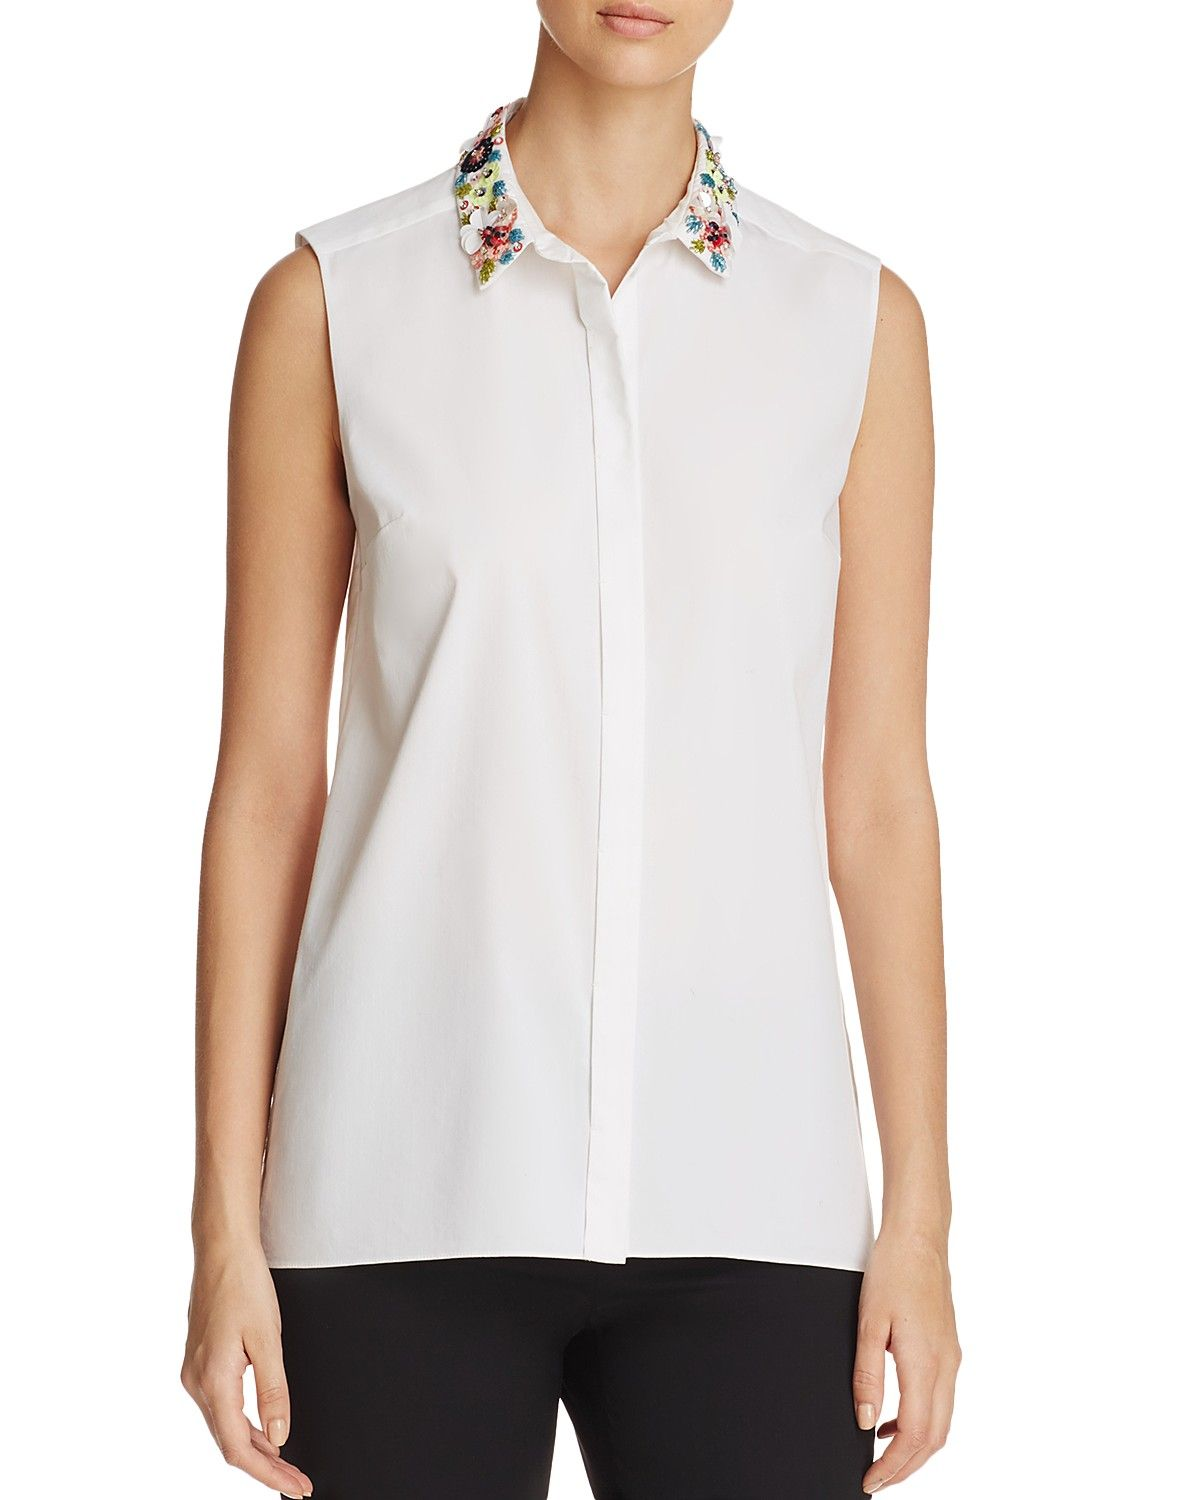 02ce653954a6cf Elie Tahari Carla Embellished Collar Blouse - 100% Exclusive | 100 ...